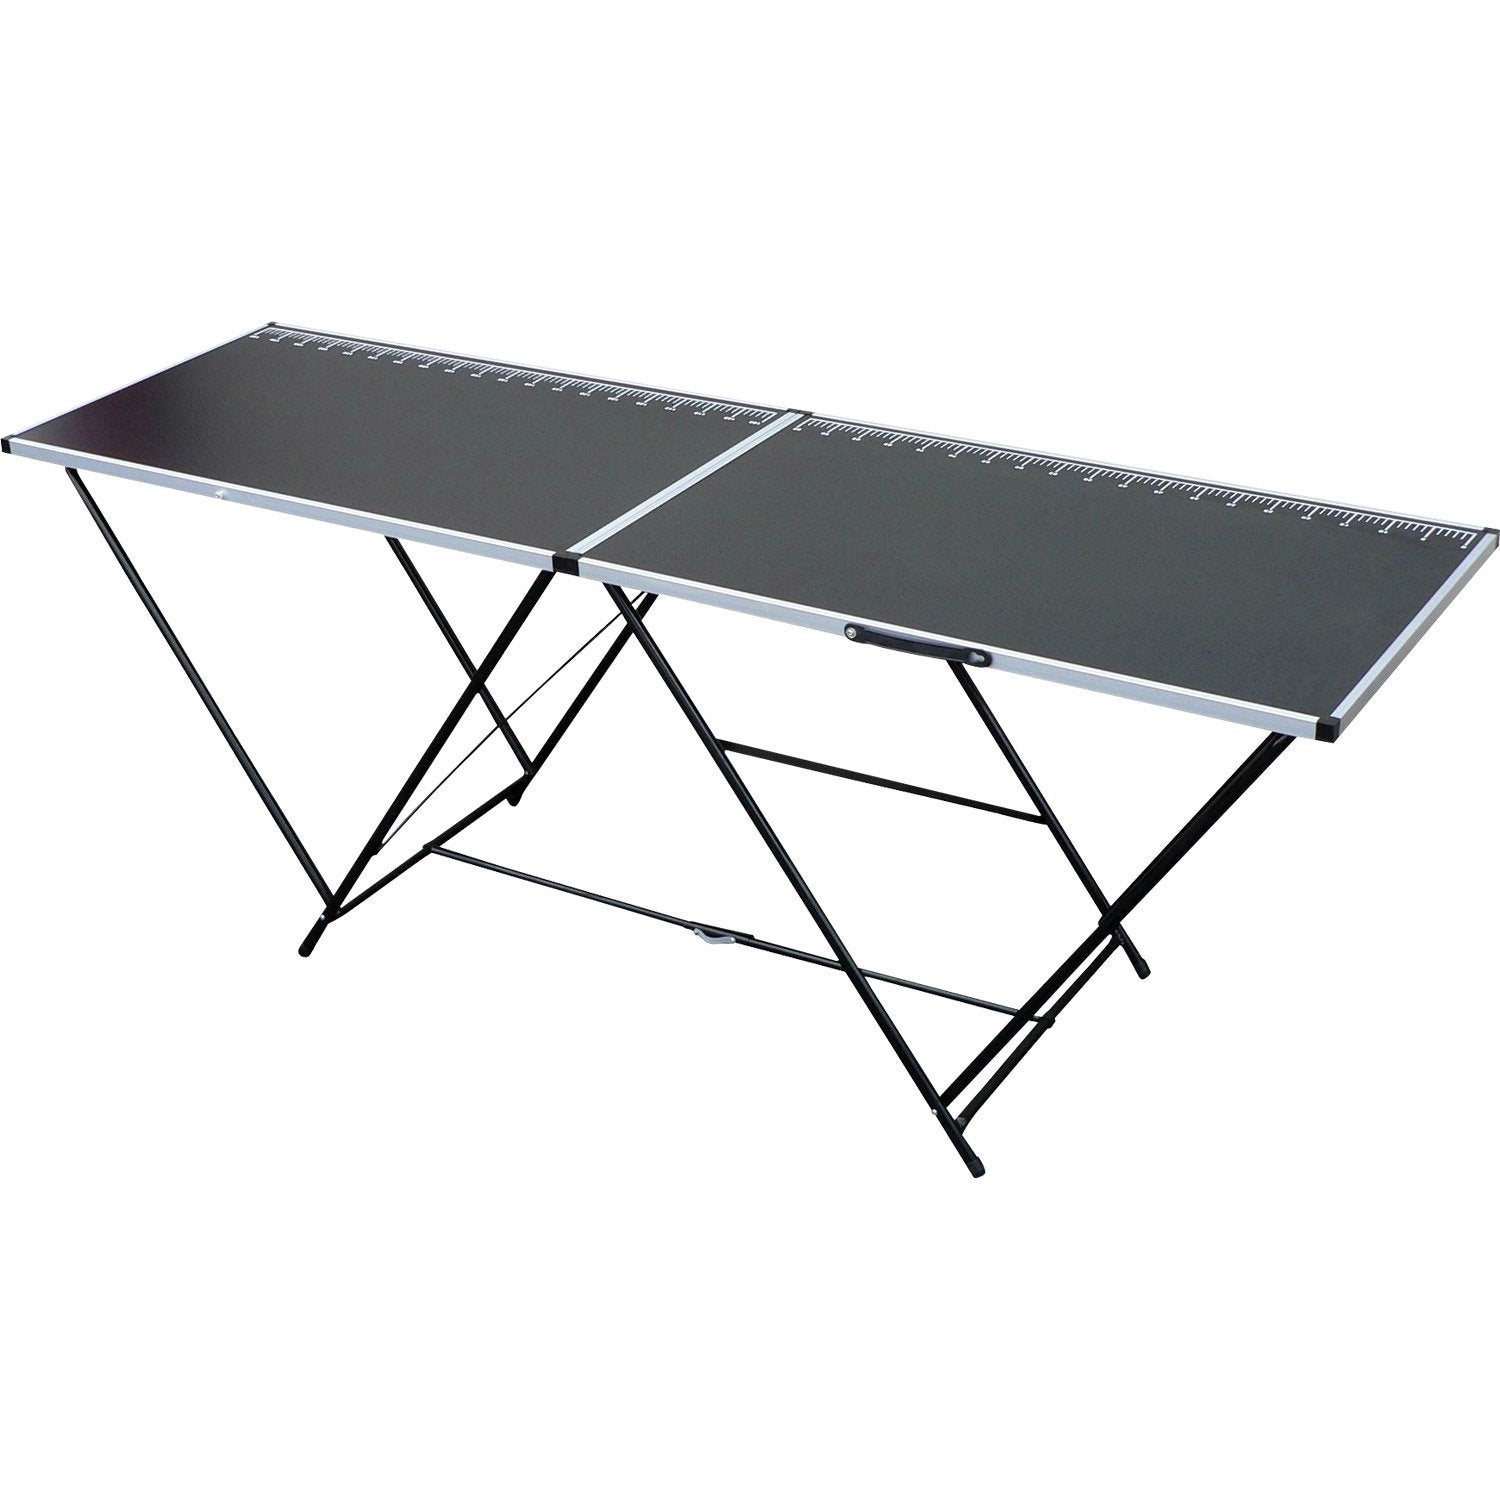 Table tapisser pliante en bois et aluminium 60 cm x 2 m - Table pliante leroy merlin ...